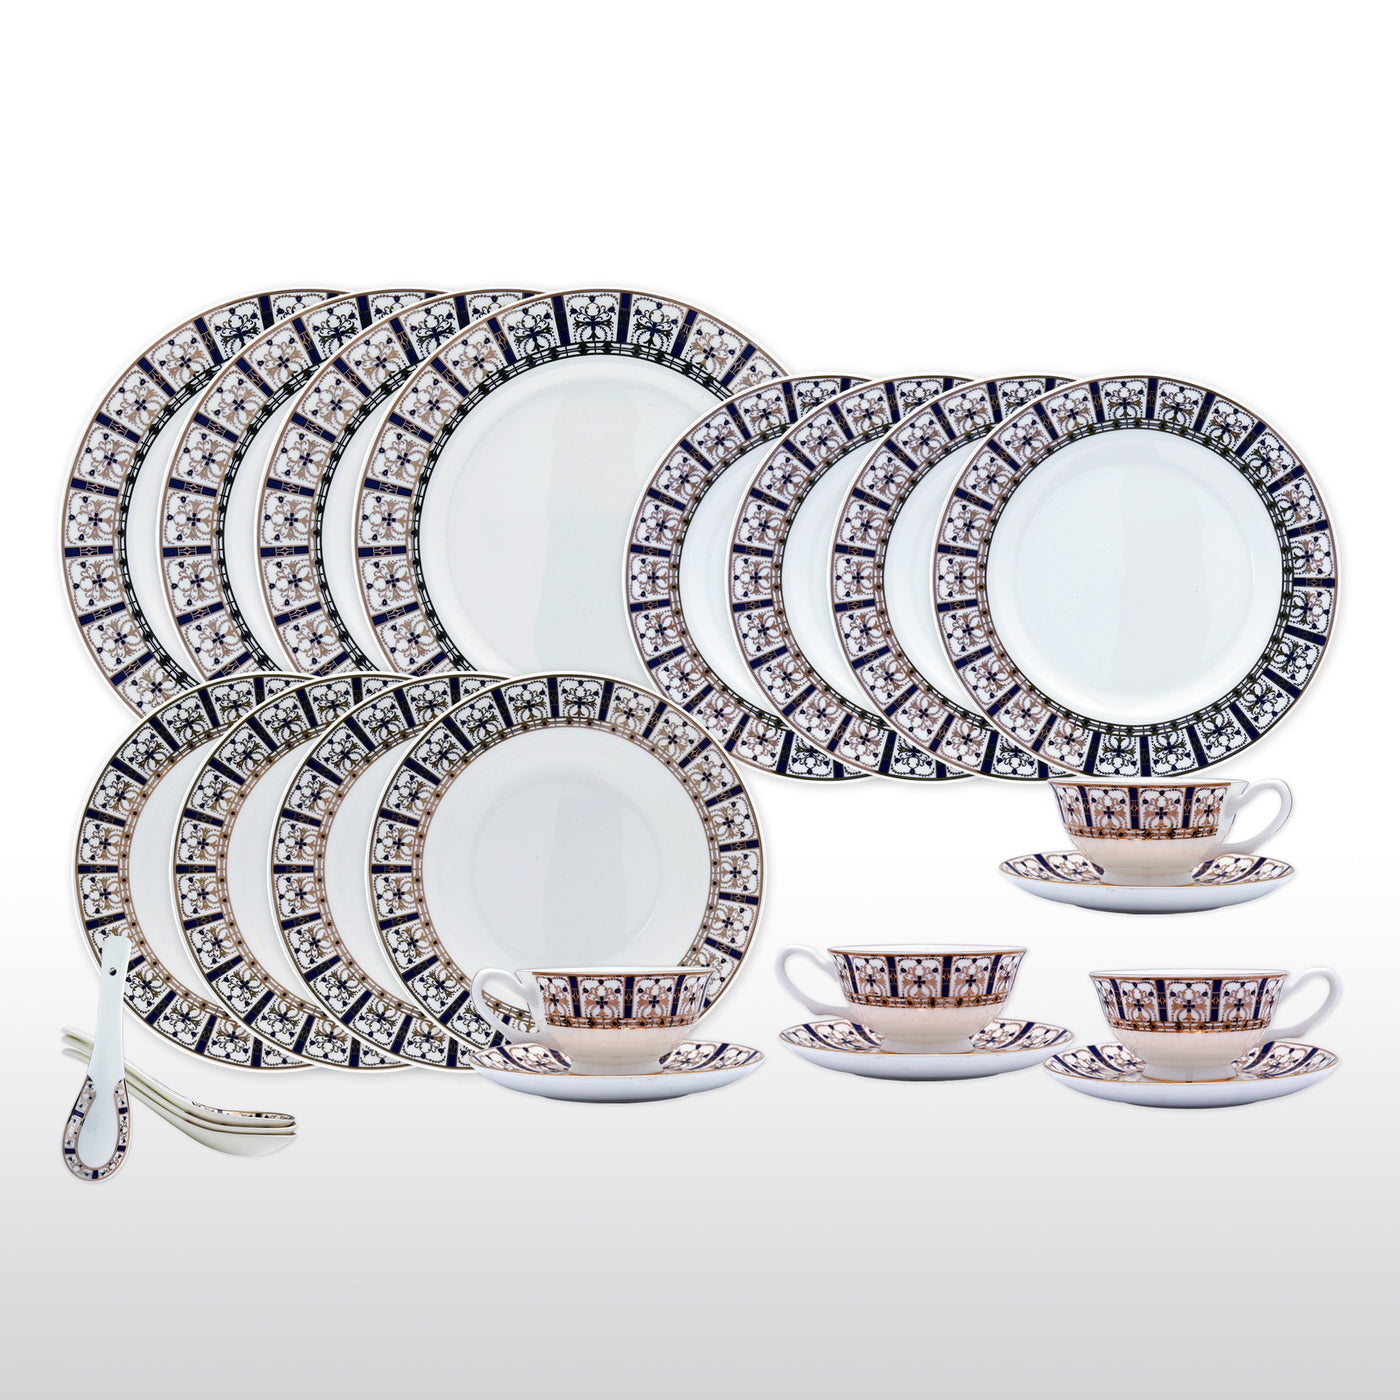 Dinnerwares - Bone China 24 Piece Dinnerware Set Decorative Patterns In Blue And Gold Service ...  sc 1 st  Homenique.net & Fine Bone China Dinnerware Set - 24 Piece Service for 4 - Blue ...